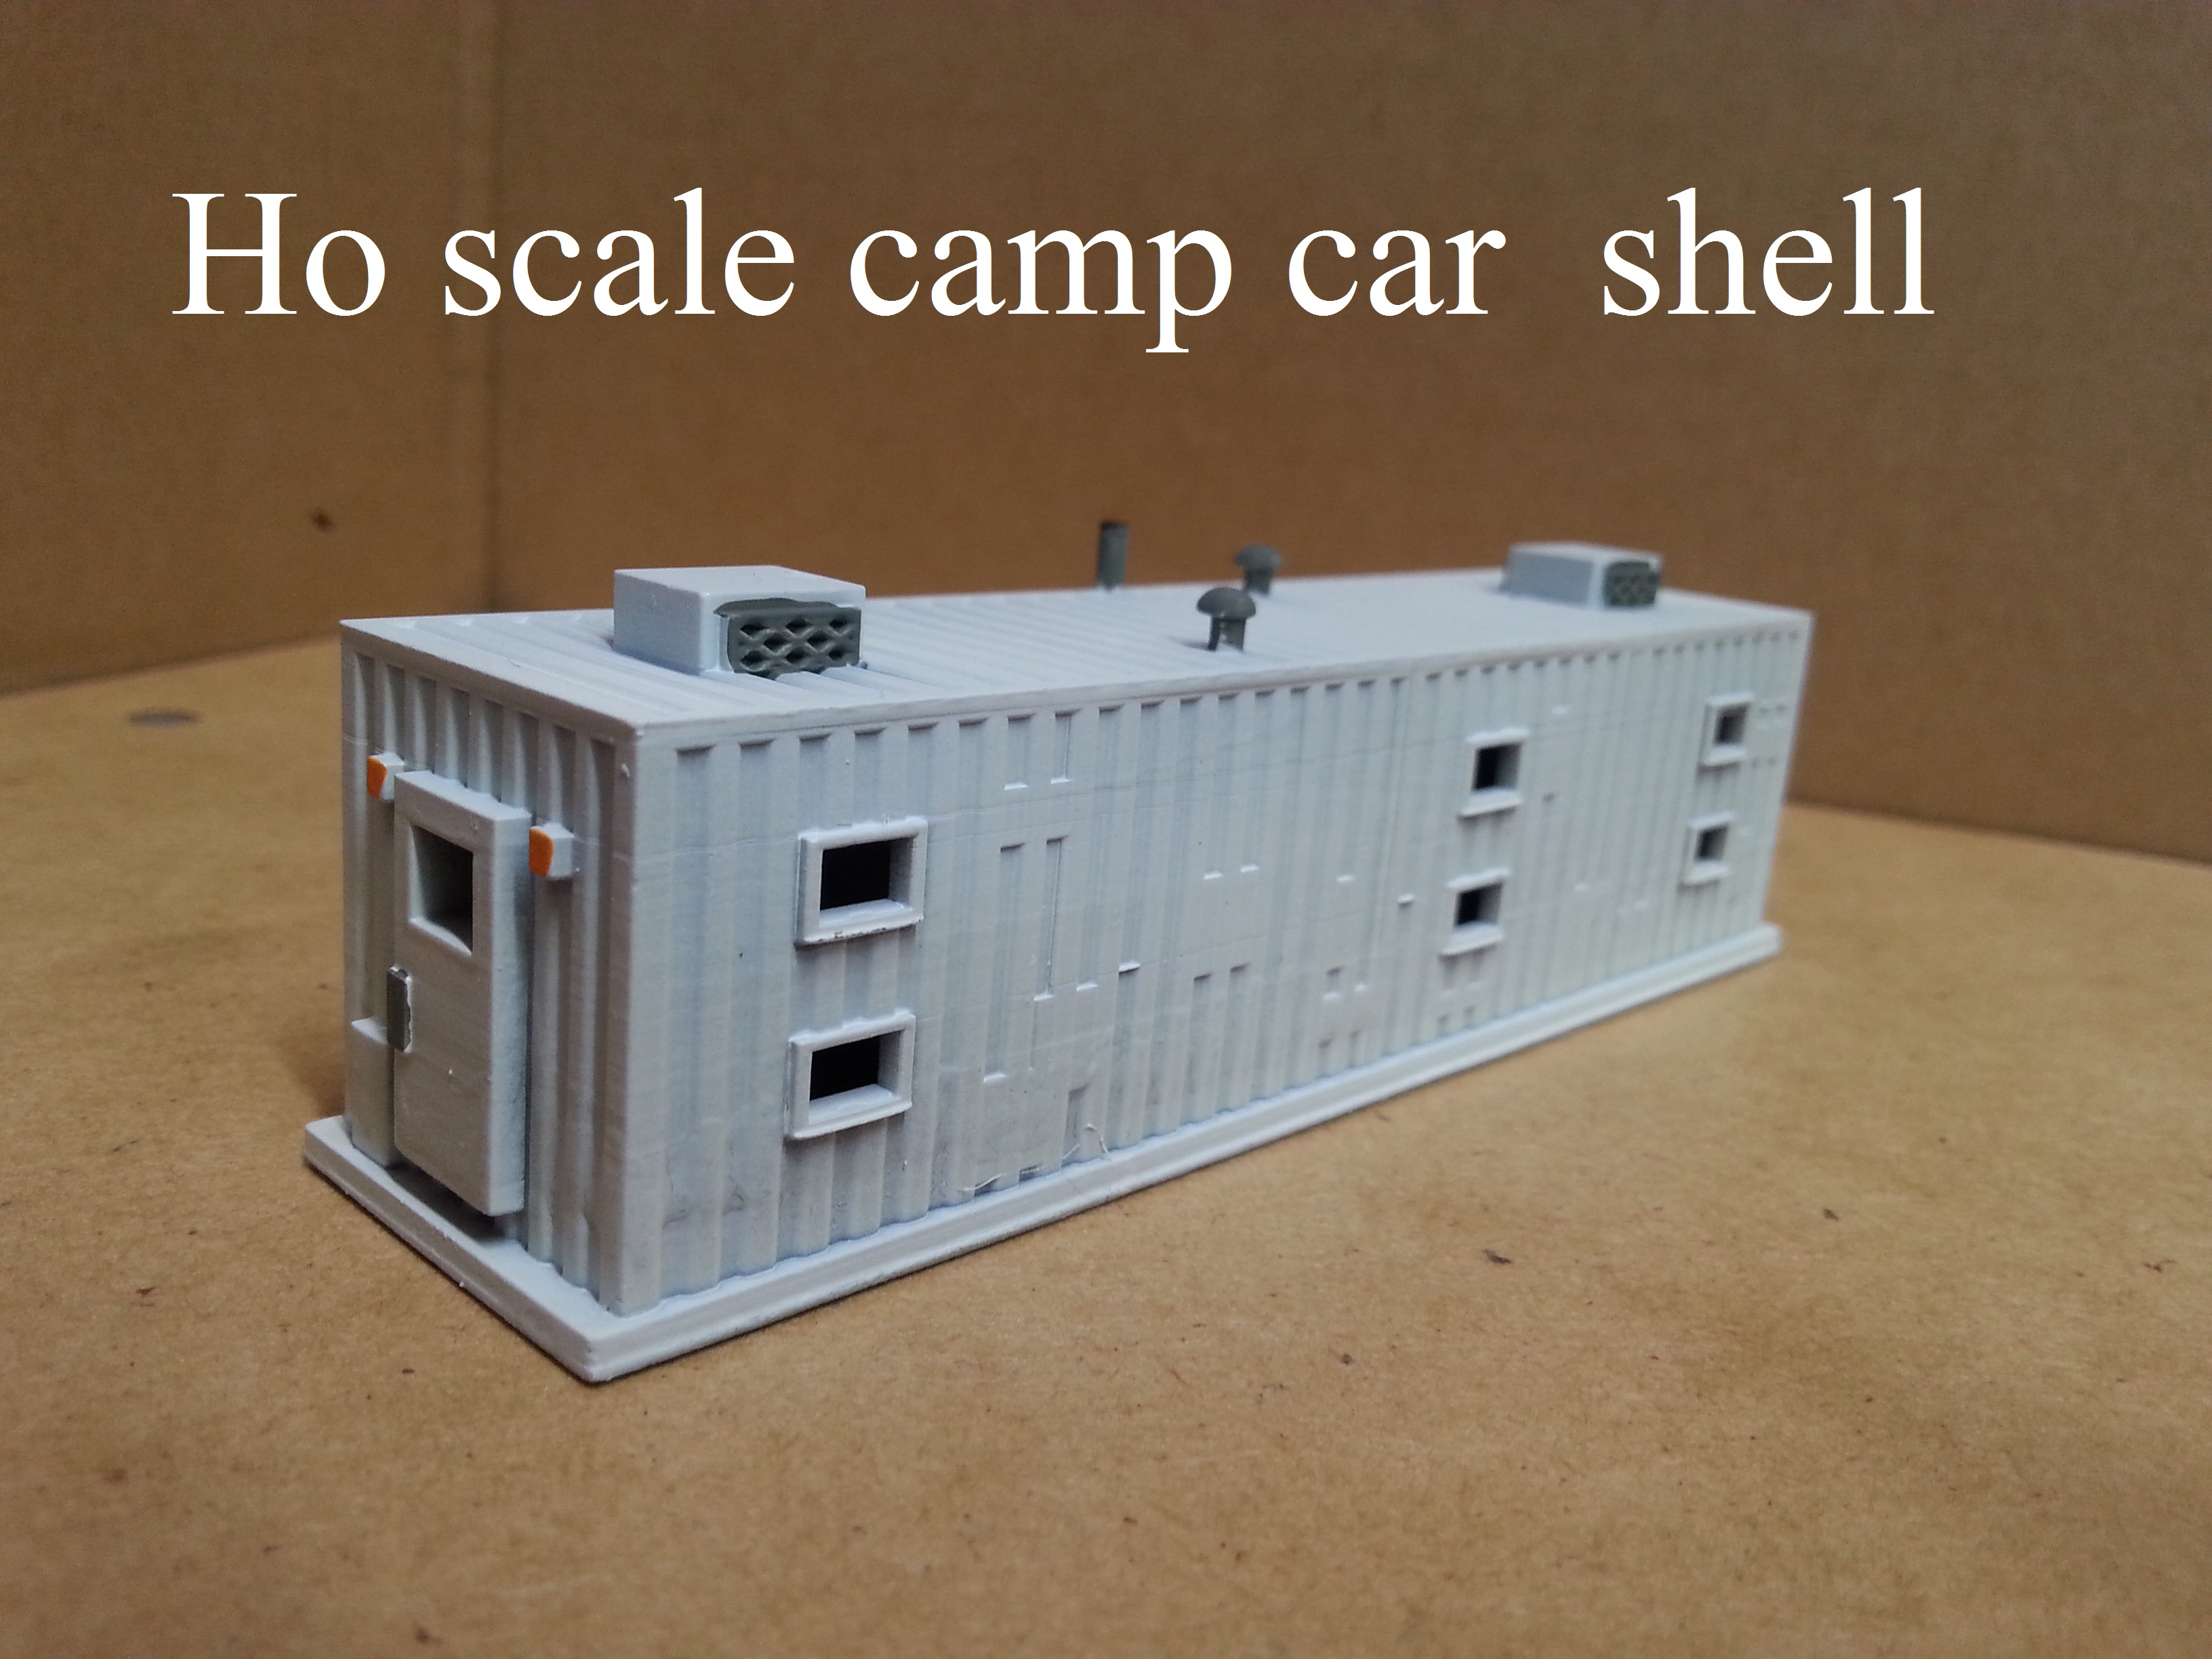 Ho scale Camp Car shell